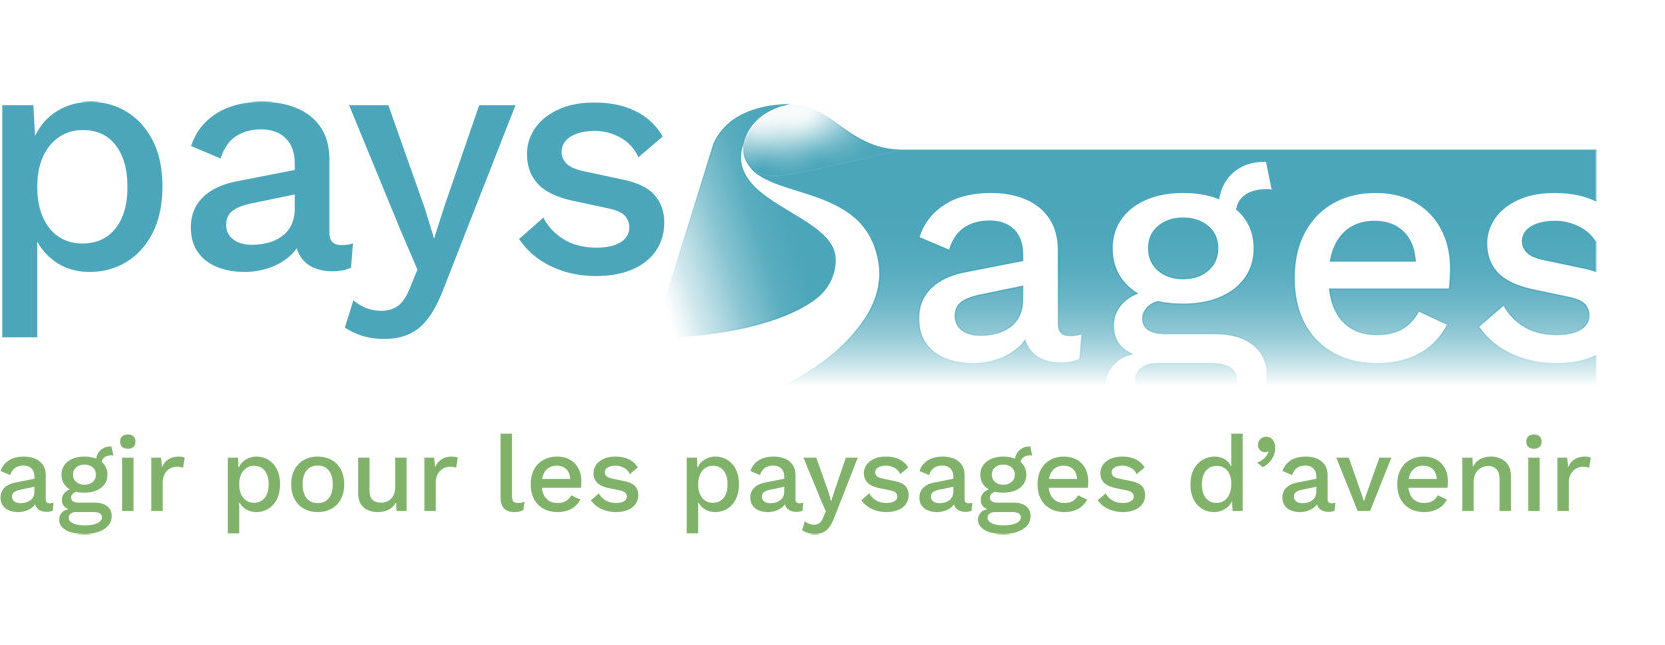 PAYSSAGES.ORG